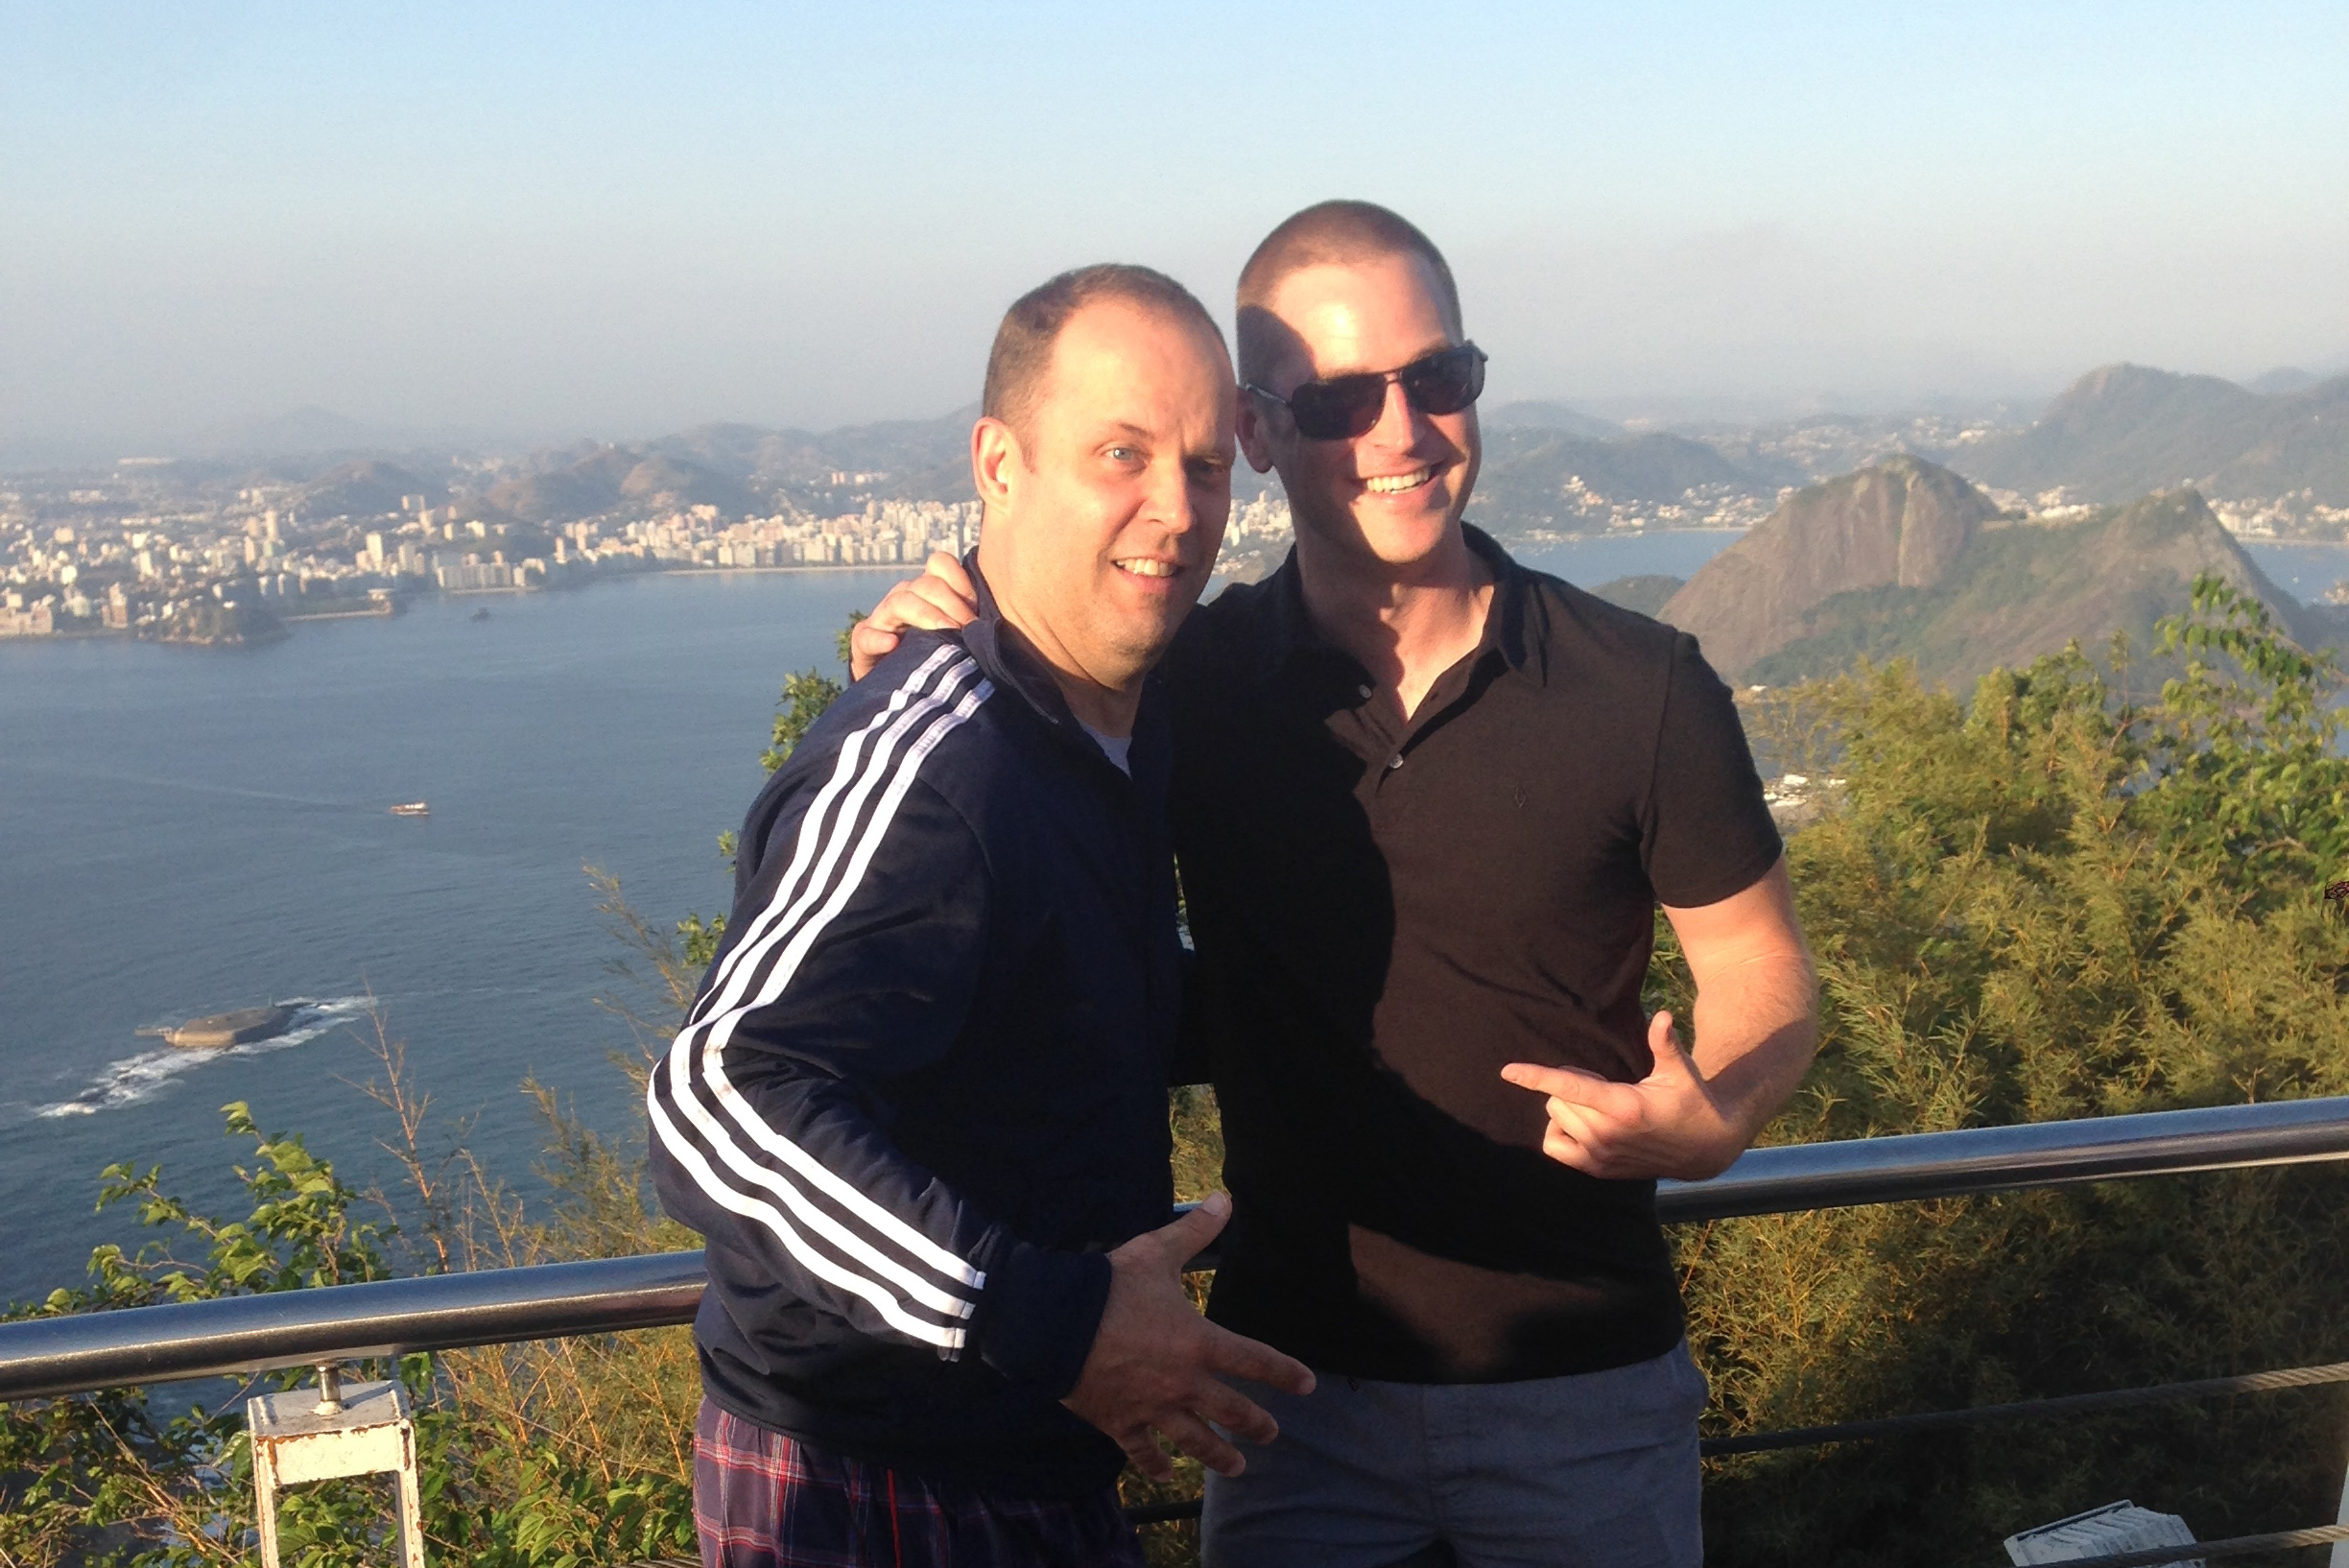 Jon Cudo (left) and Patrick Walker (right) in Rio De Janeiro as part of 2014 NBA Global Games.